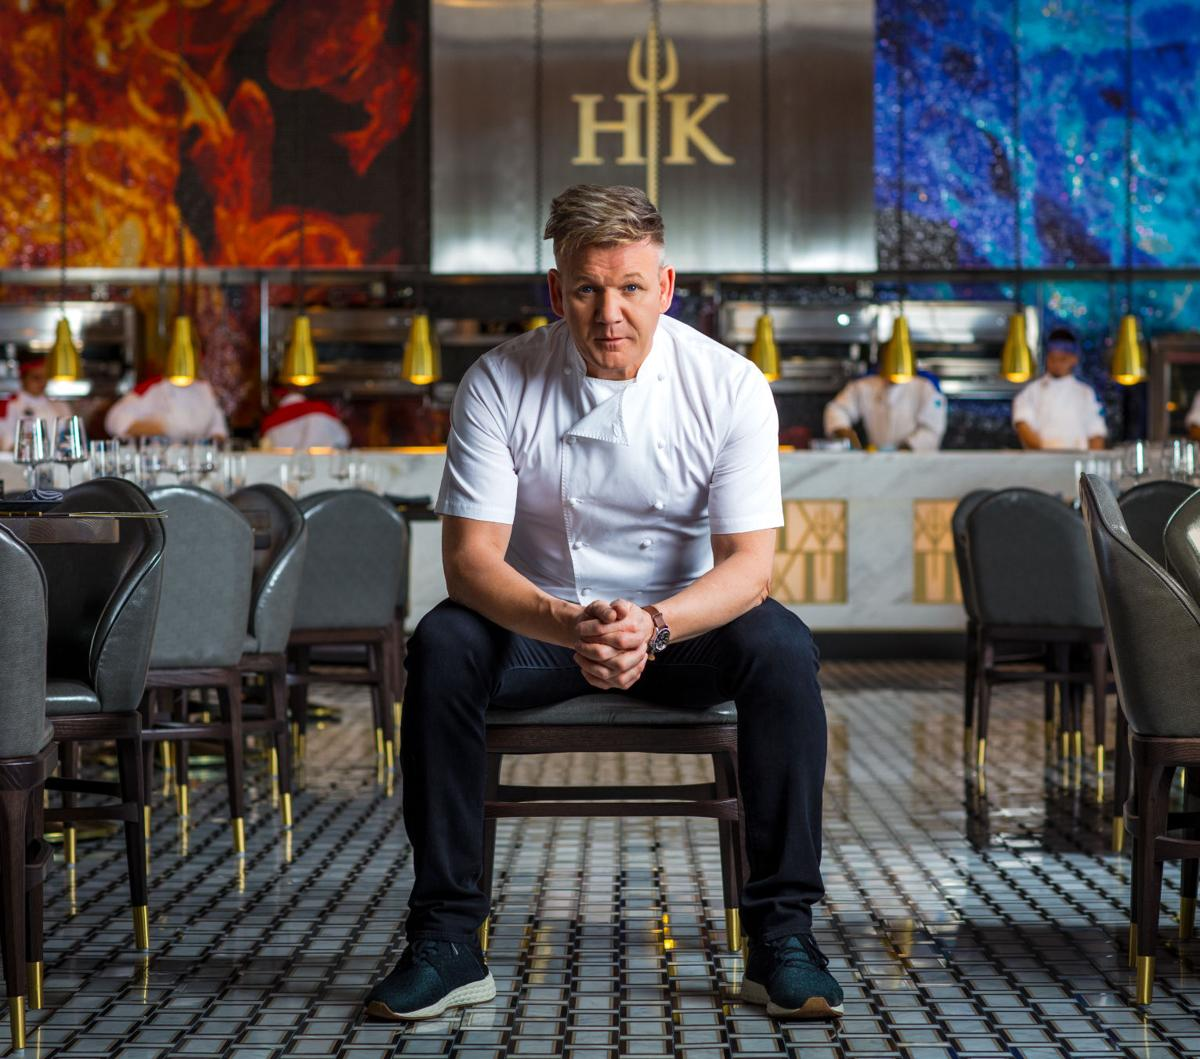 Hot temper, cool eye: Ramsay will decide local woman's fate on 'Hell's Kitchen'